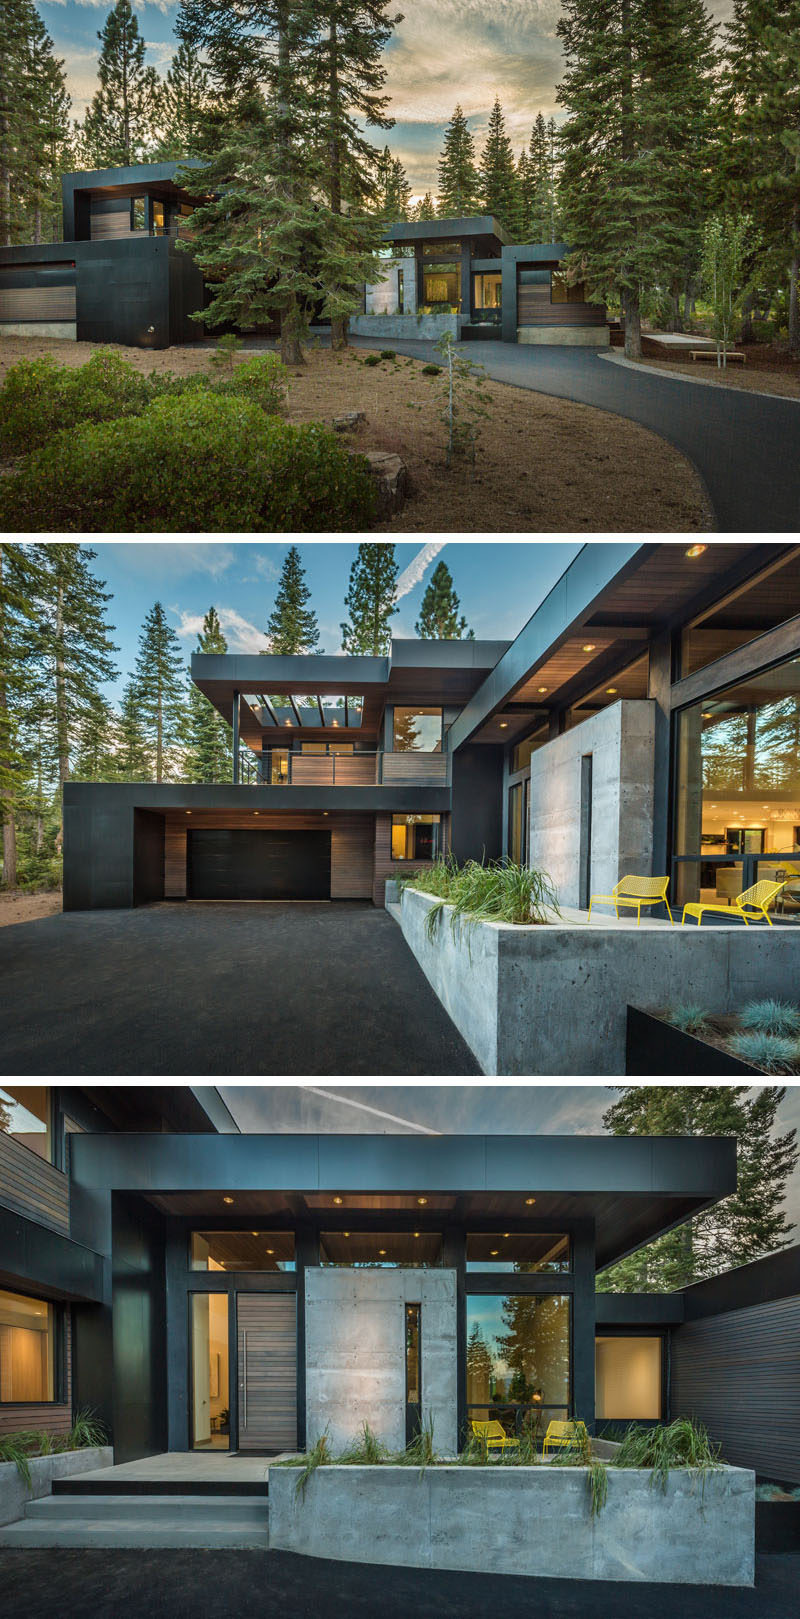 Top Beautiful Houses In the World Unique 18 Modern Houses In the forest